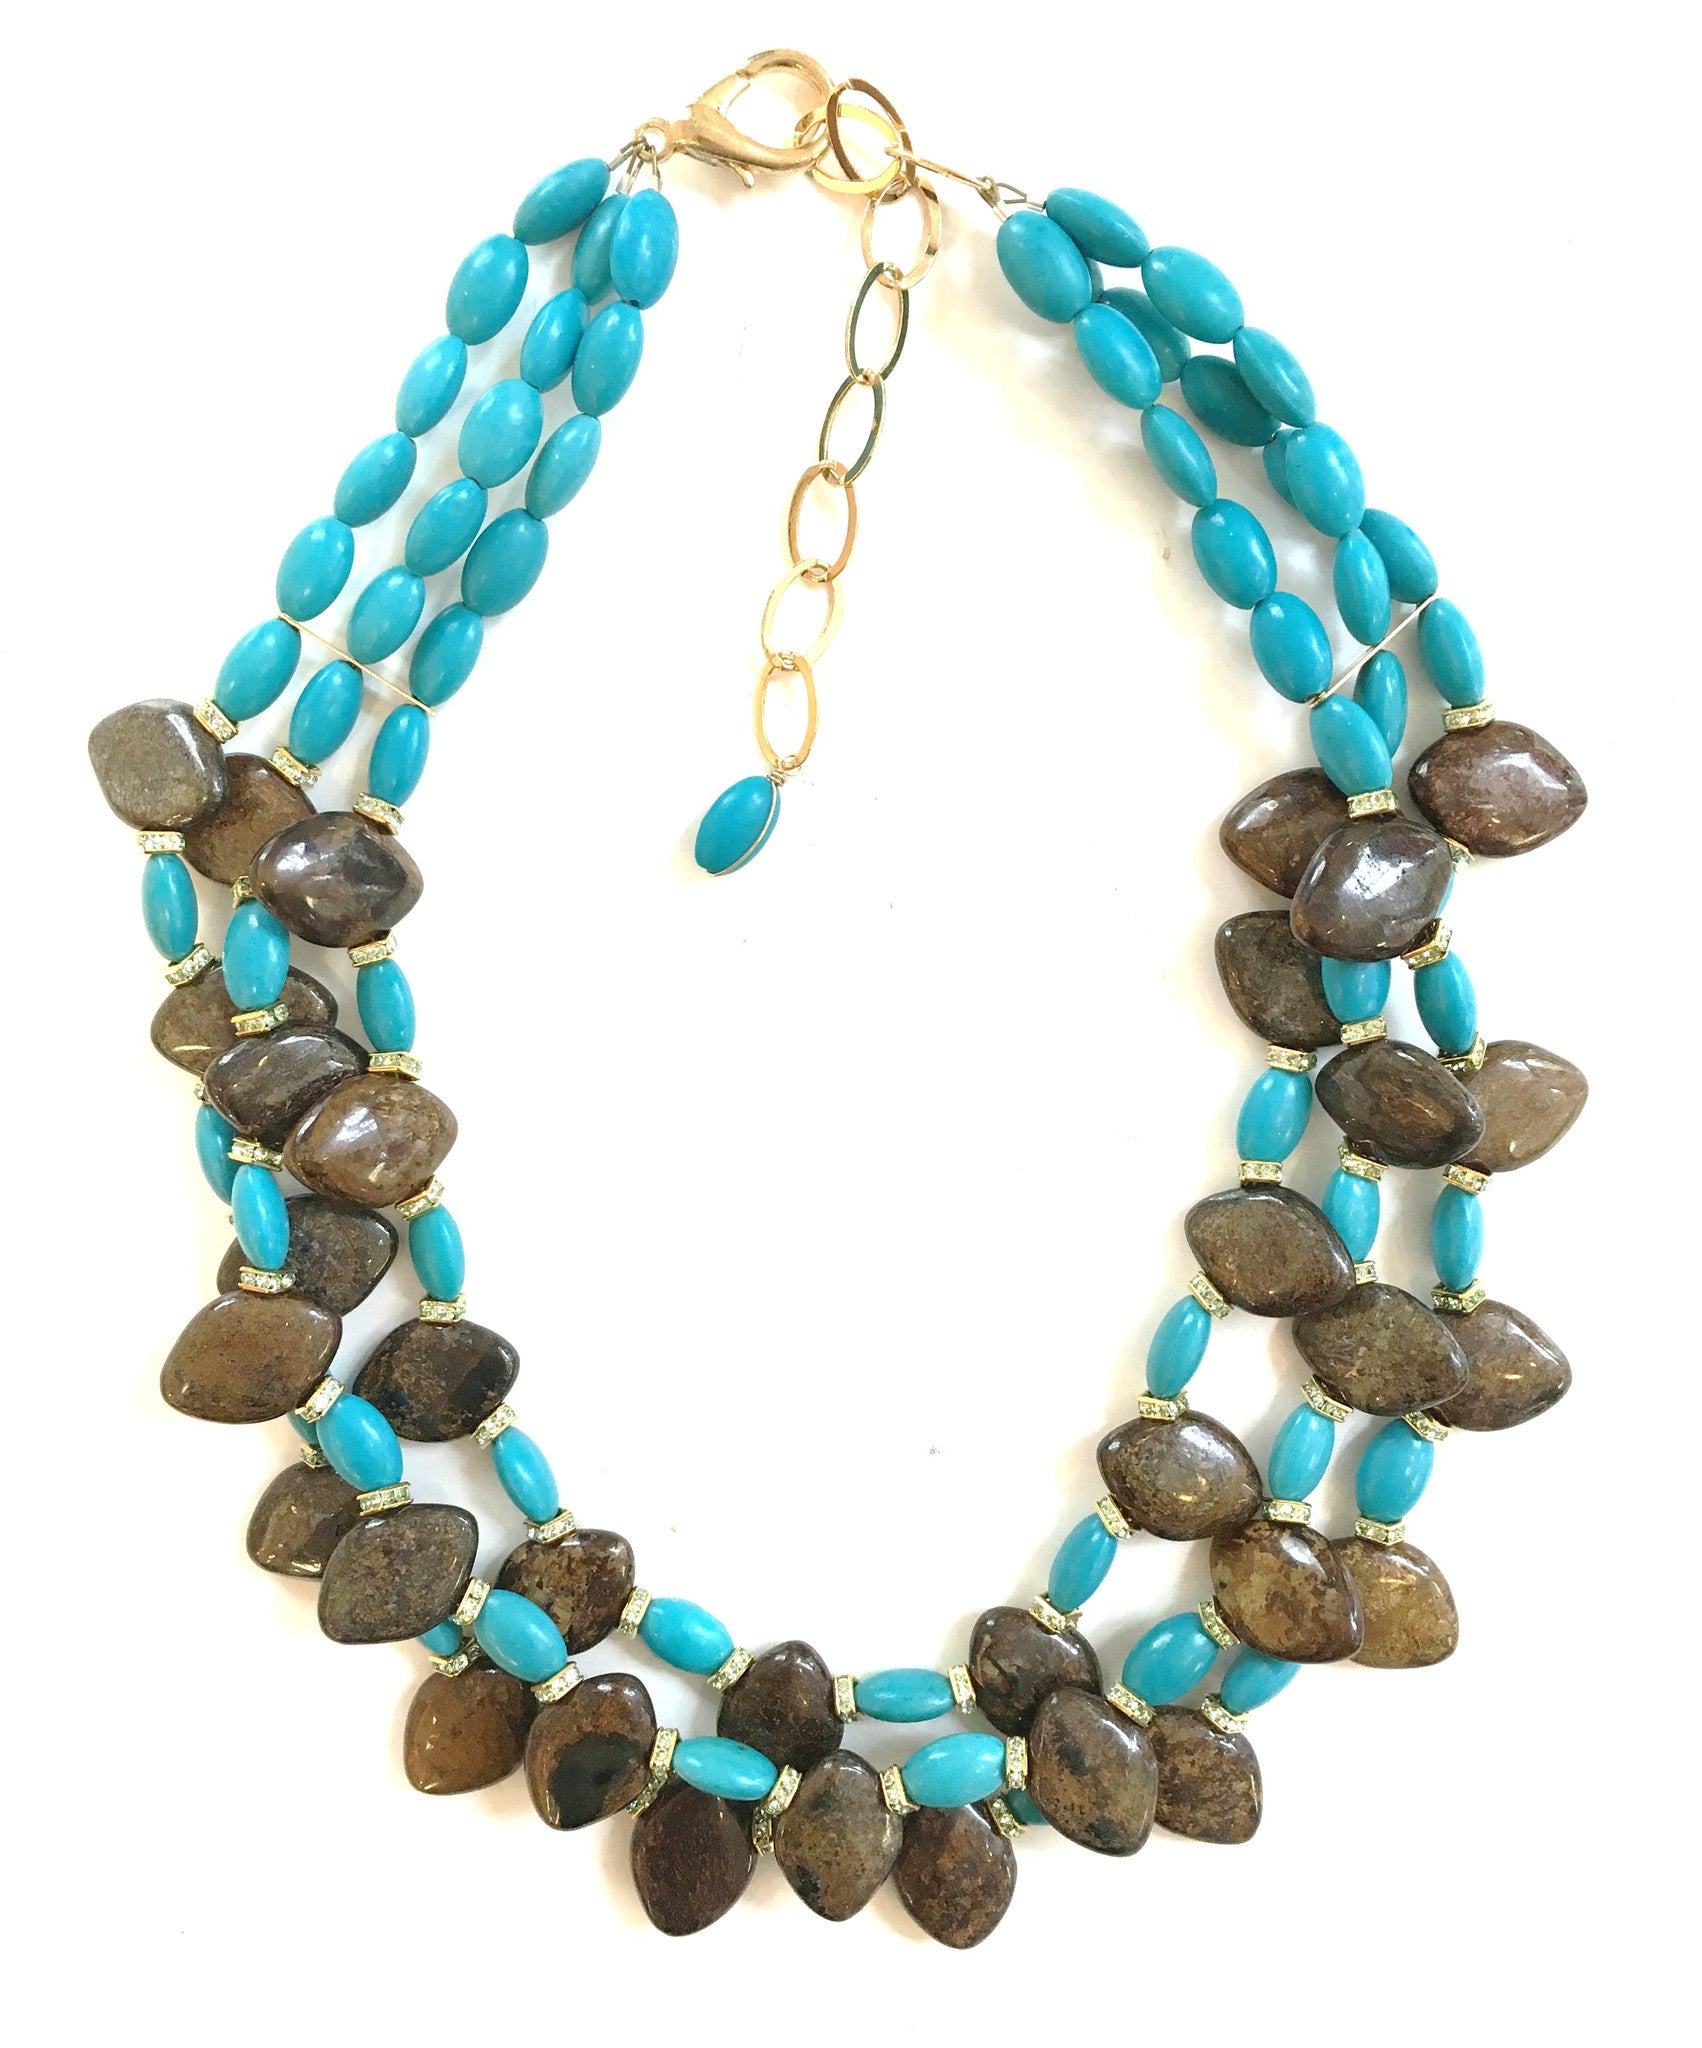 Handmade Necklace - Turquoise and Bronzite Mulit Strand Necklace